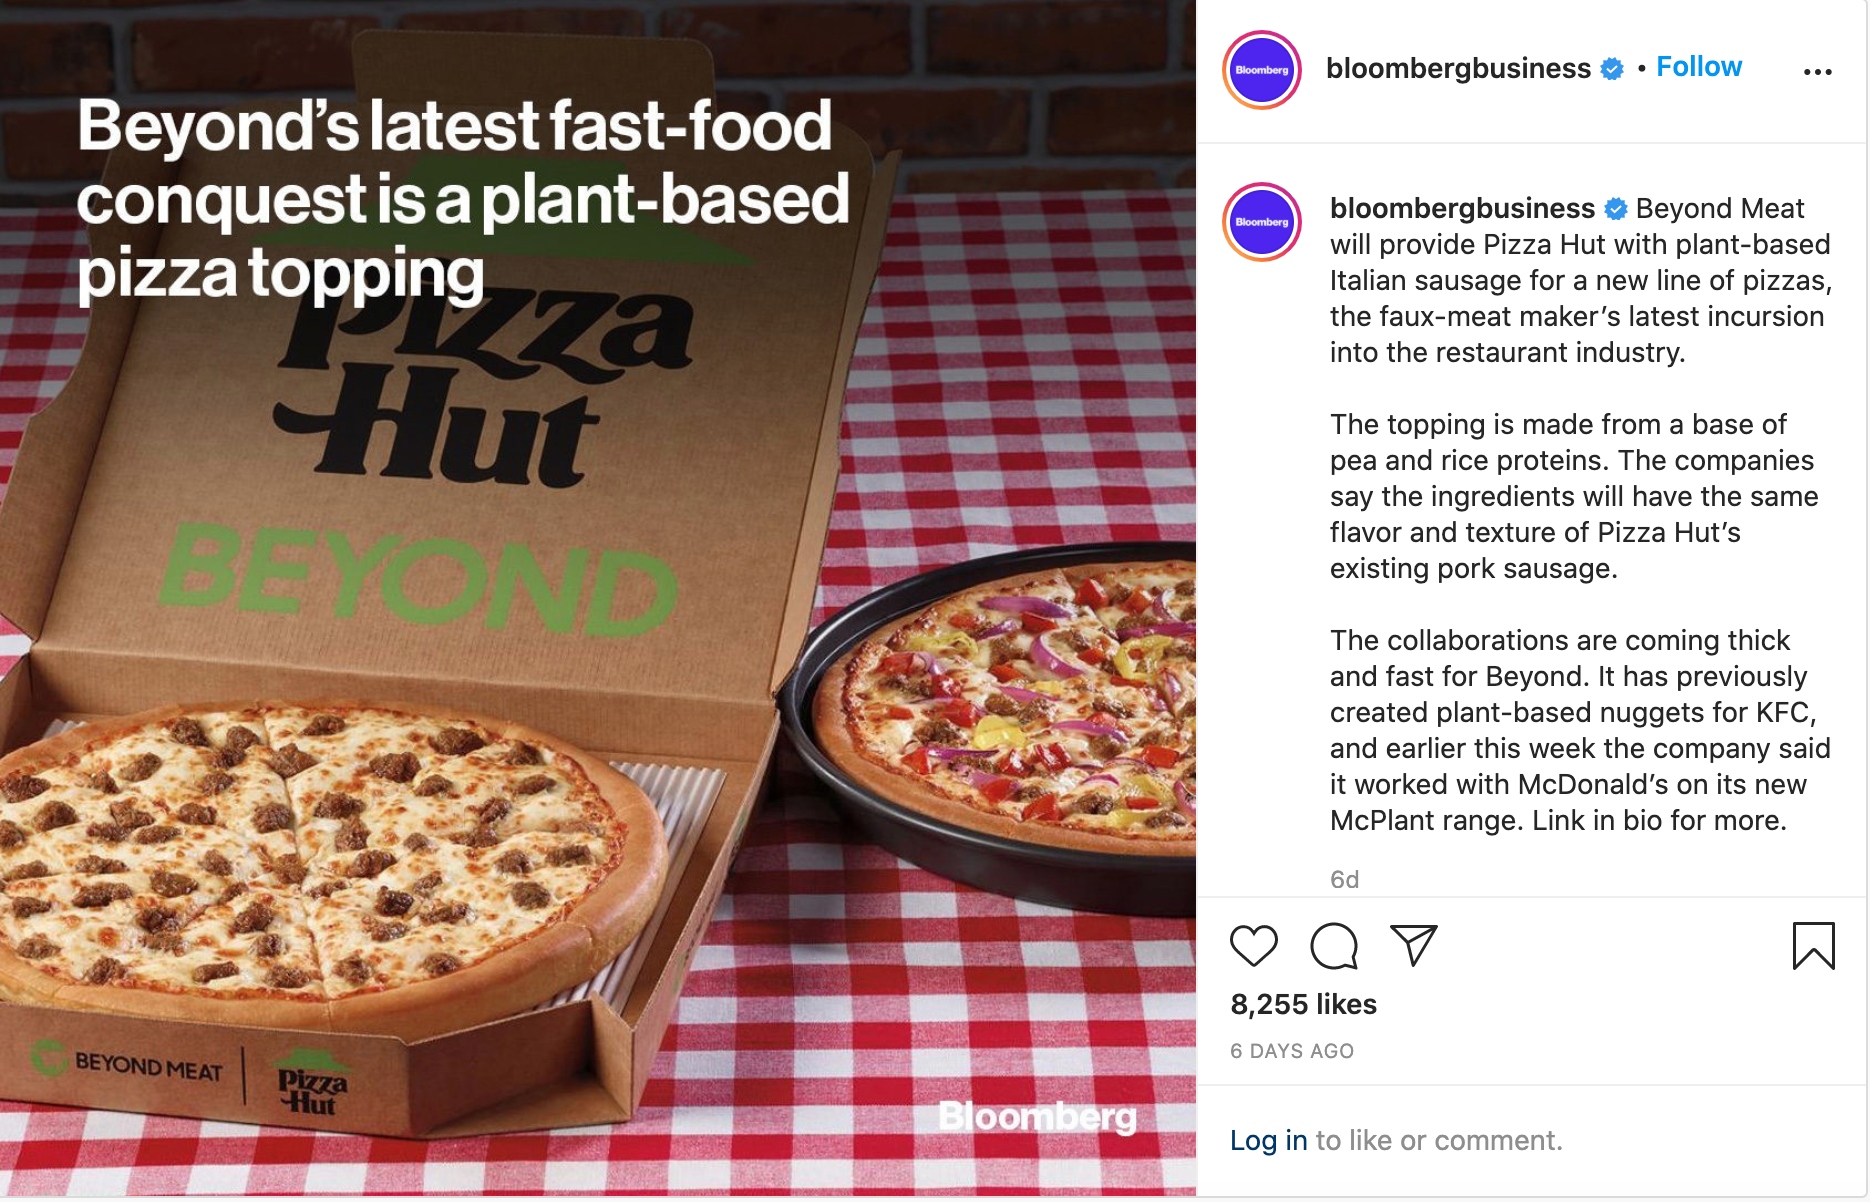 Beyond Meat Insta Post 1